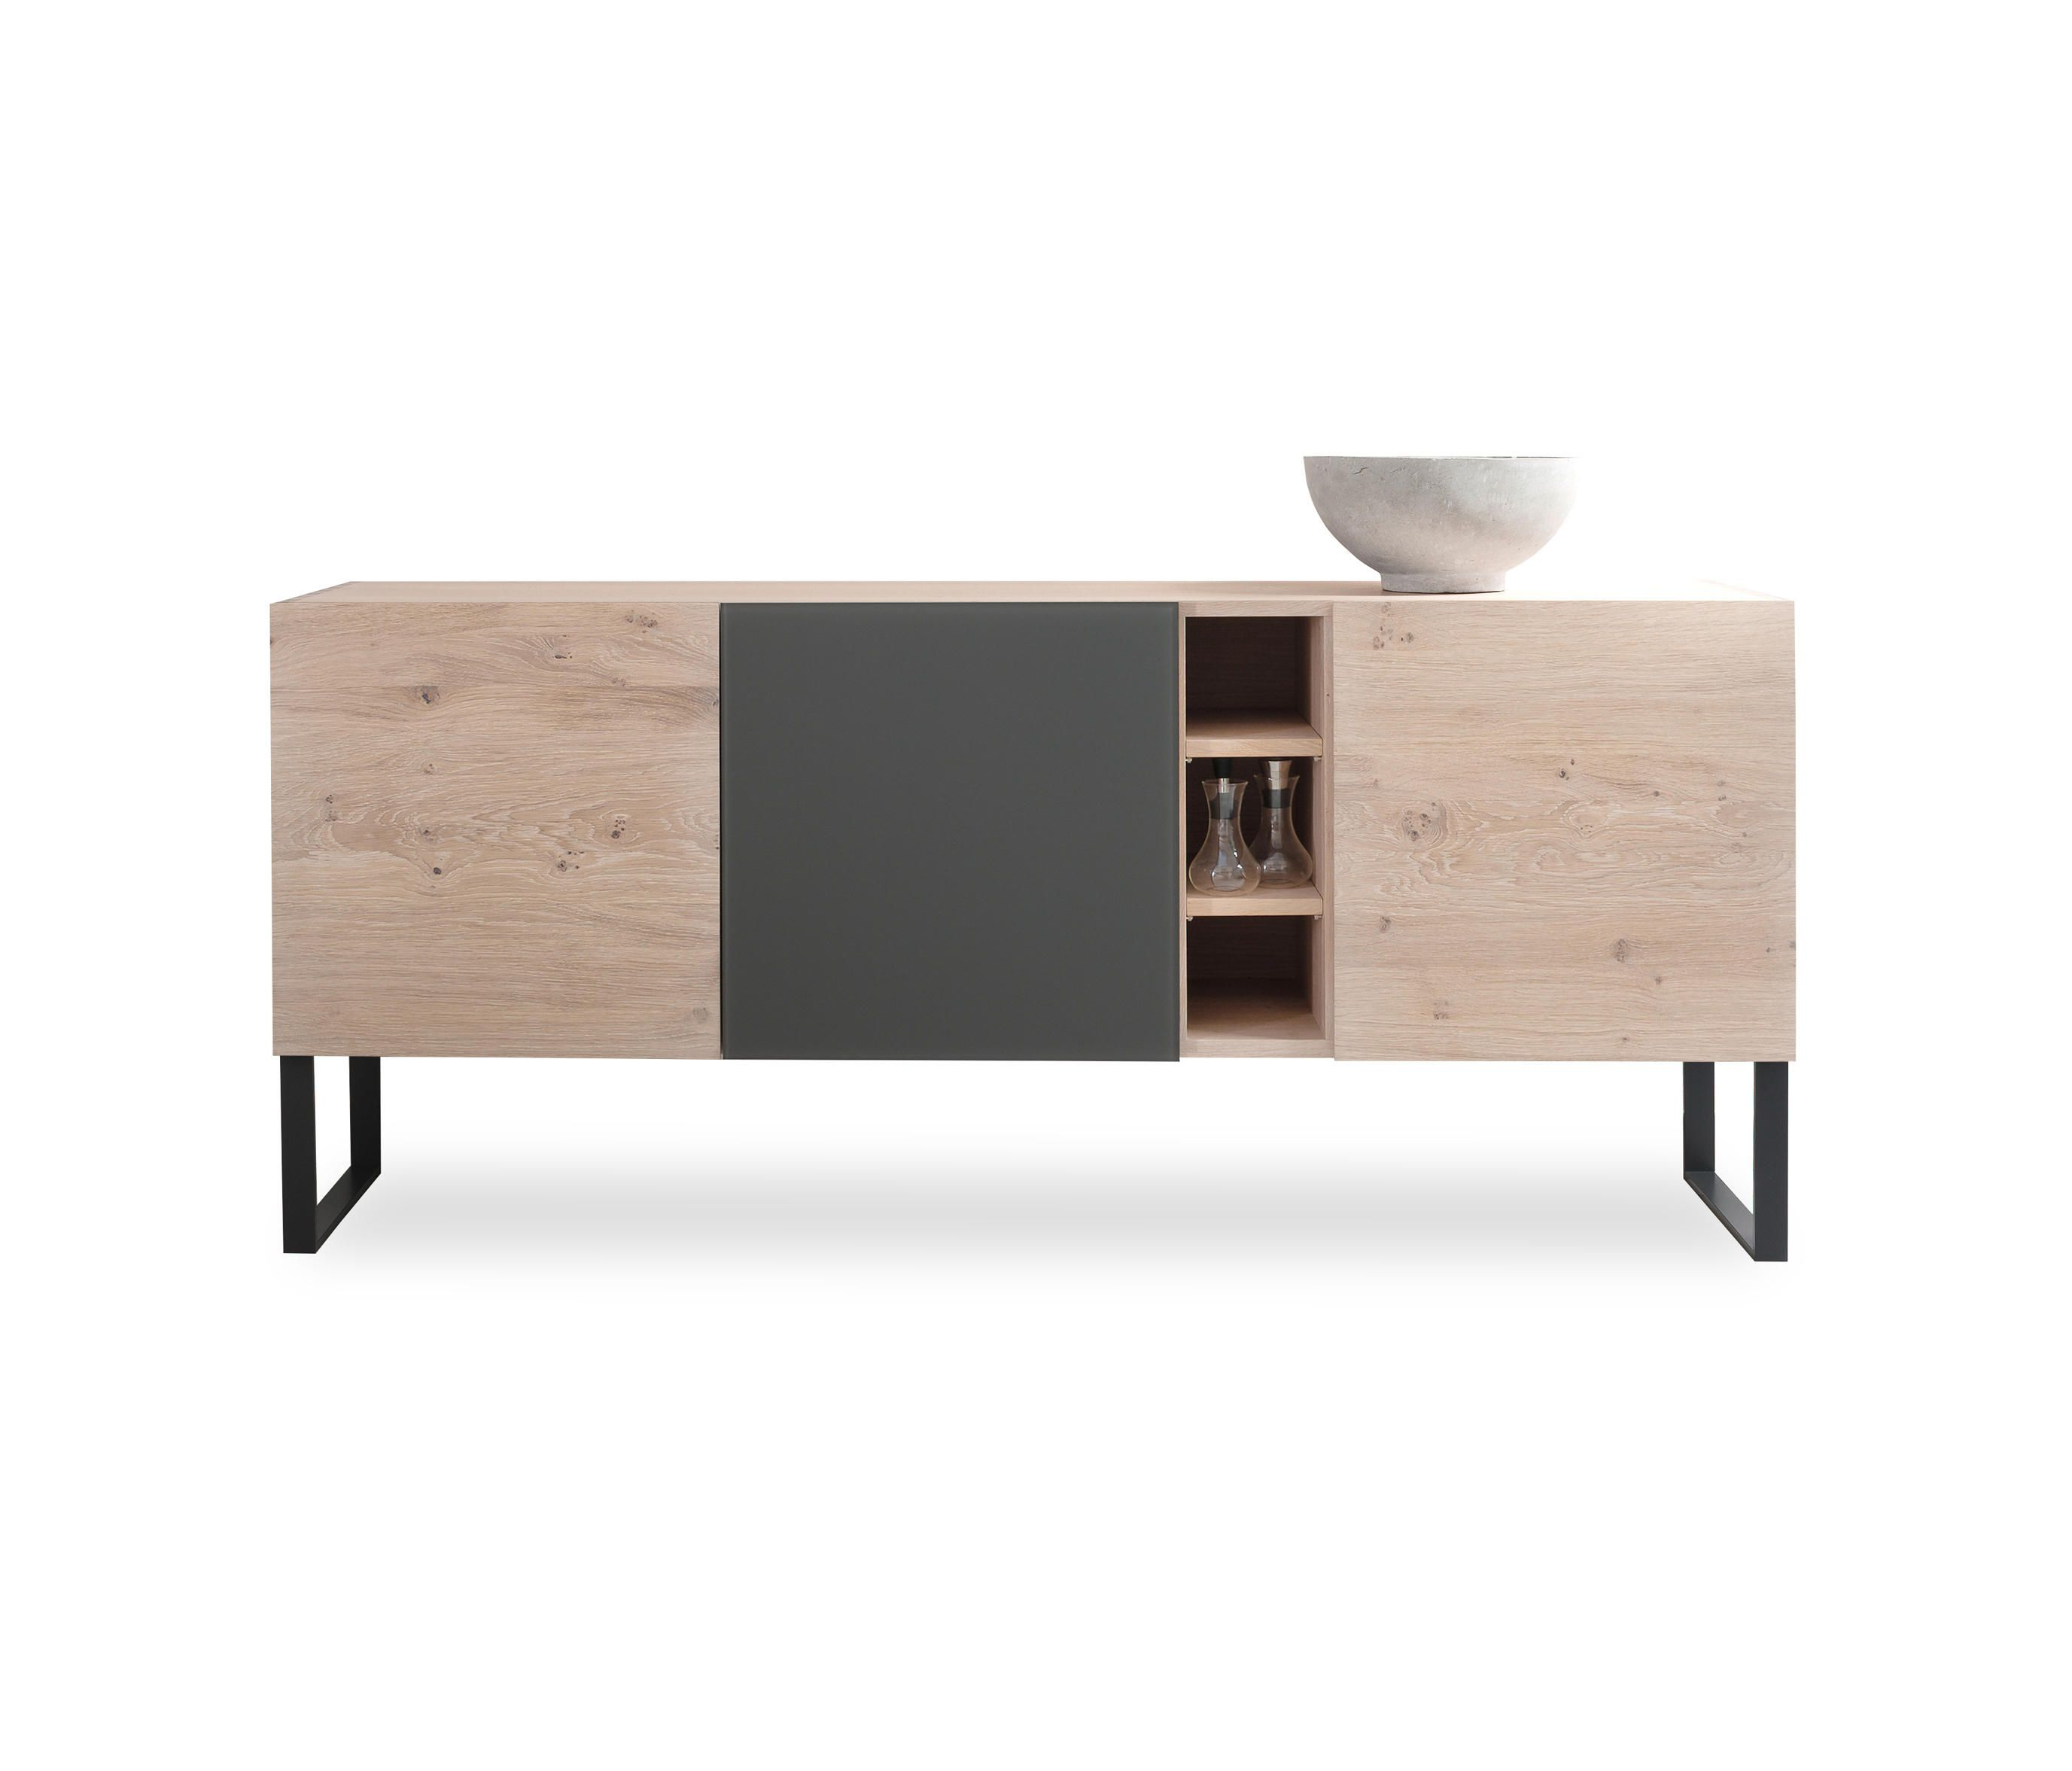 Kuub Anrichte Designer Sideboards From Form Exclusiv All Information High Resolution Images Cads Catalogues Contact Information Wood Furniture Furniture Sideboard